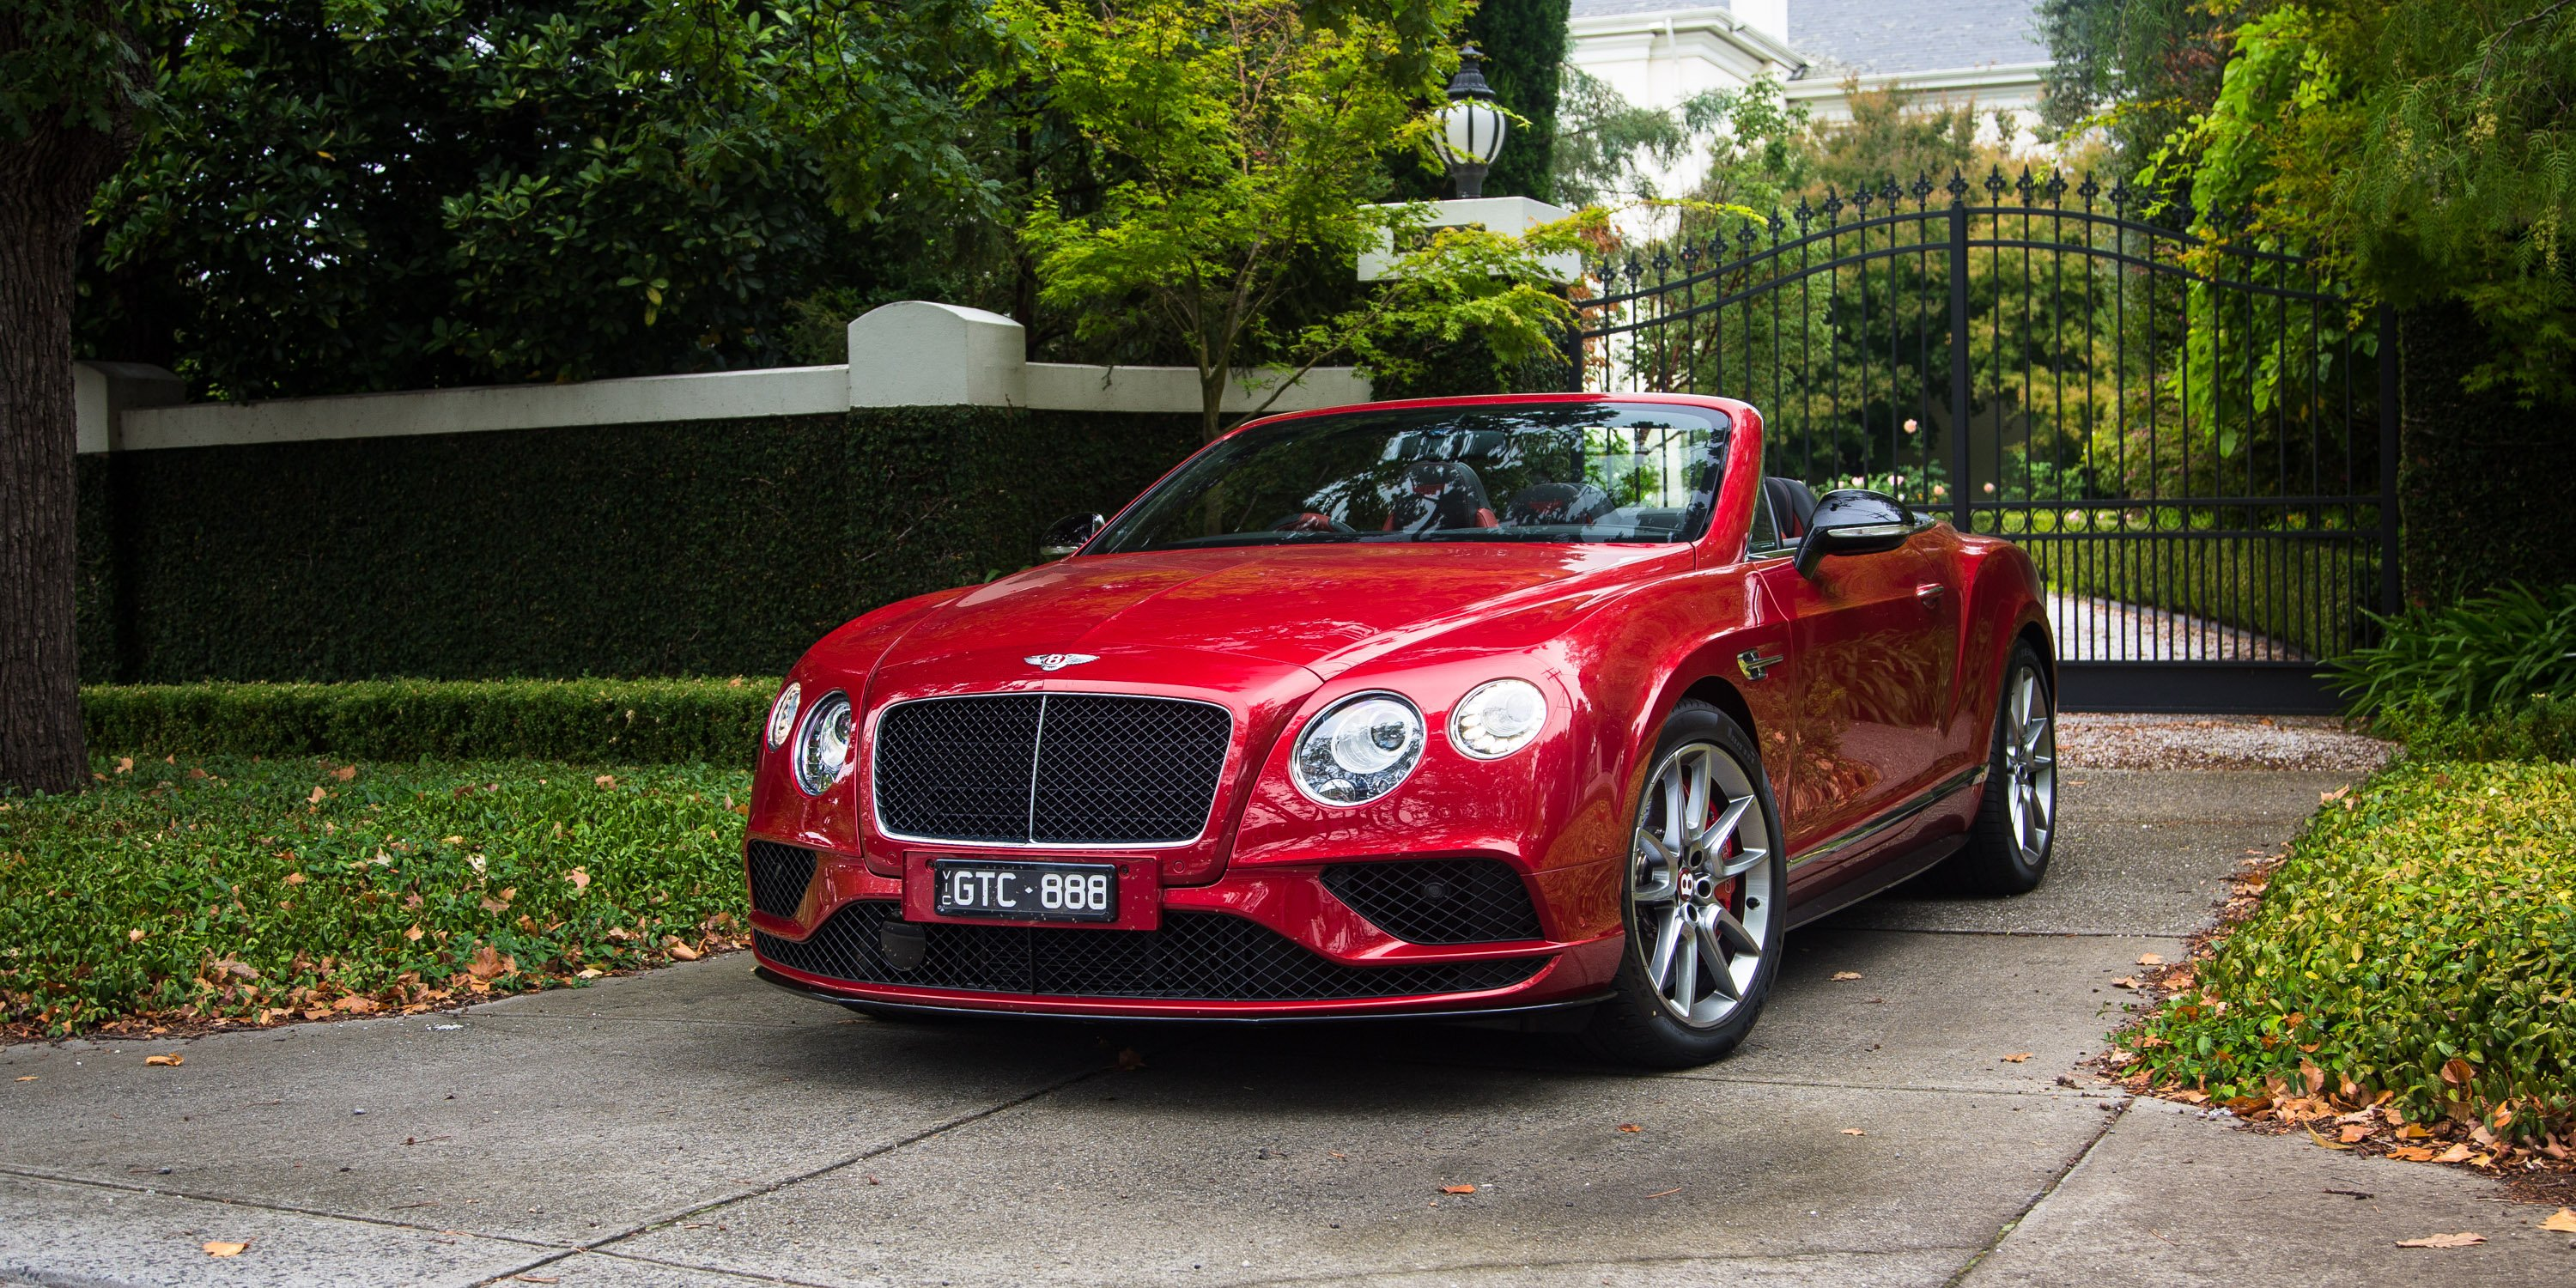 2017 Bentley Continental Gt Convertible >> 2016 Bentley Continental GT Convertible V8 S Review | CarAdvice